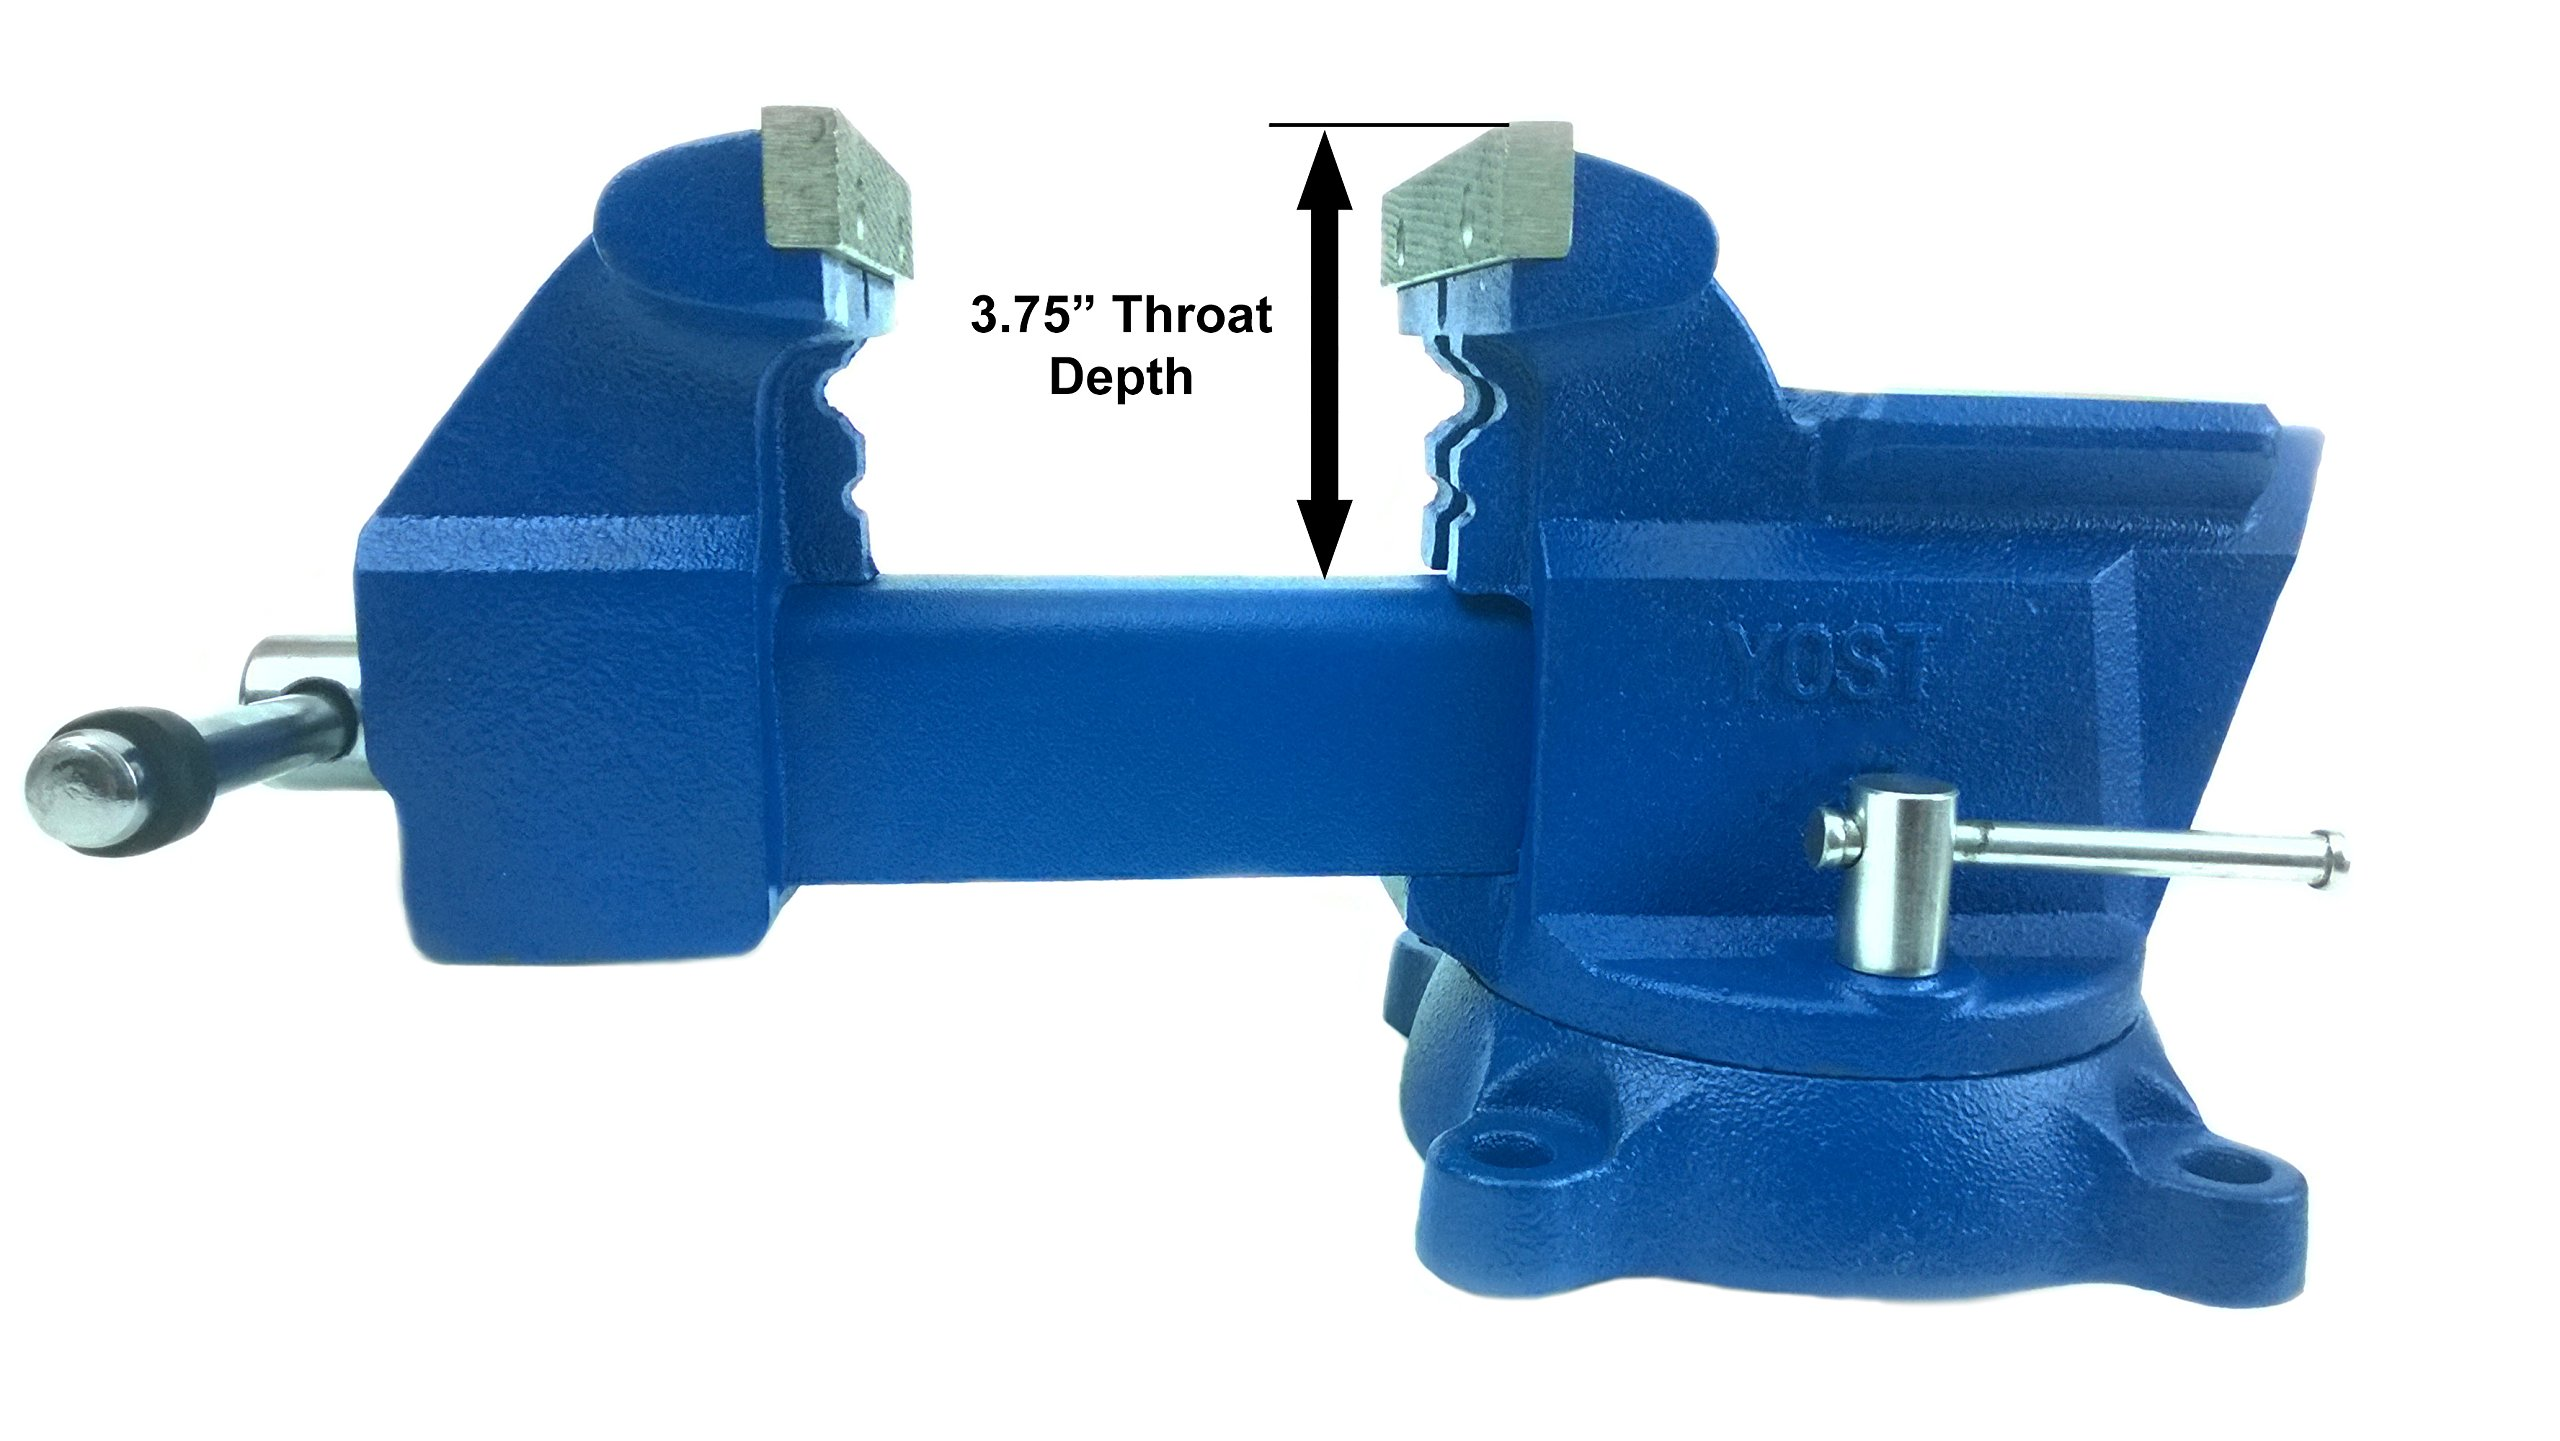 Yost Vises 465 6.5'' Combination Pipe and Bench Vise by Yost Tools (Image #4)